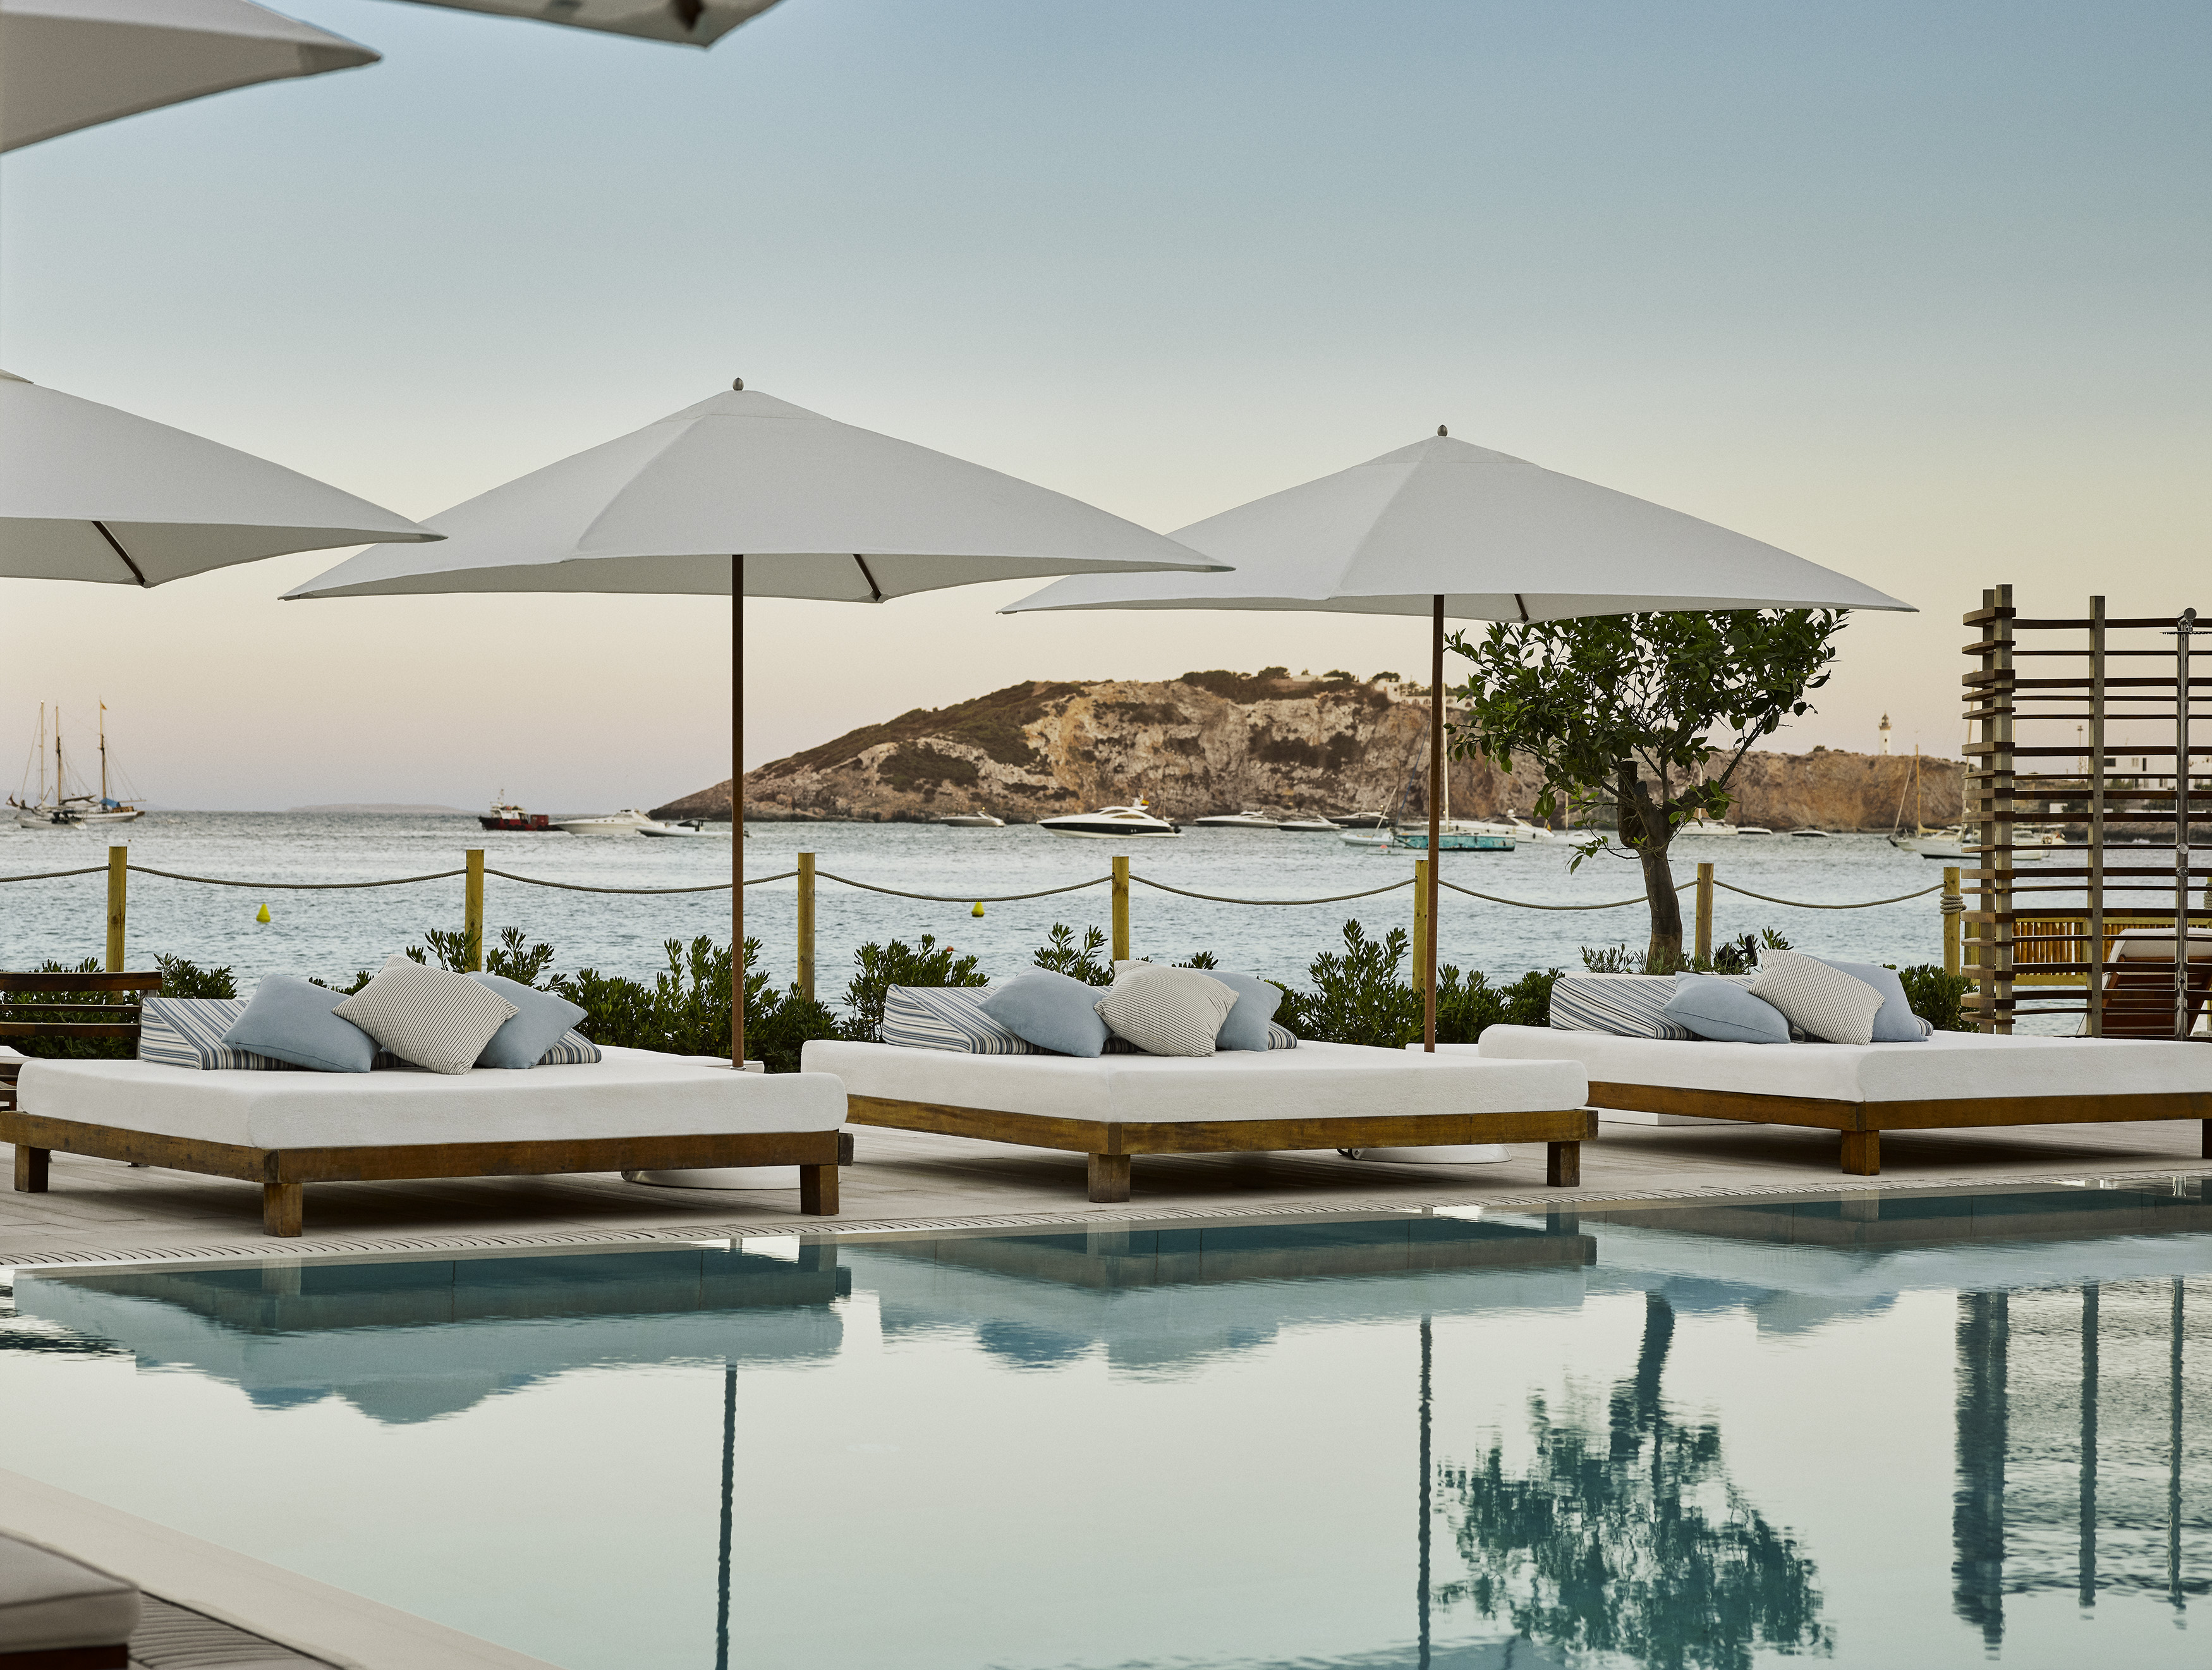 located on the white sandy beaches of talamanca bay nobu ibiza bay has been the most hotly anticipated hotel opening on the island for years